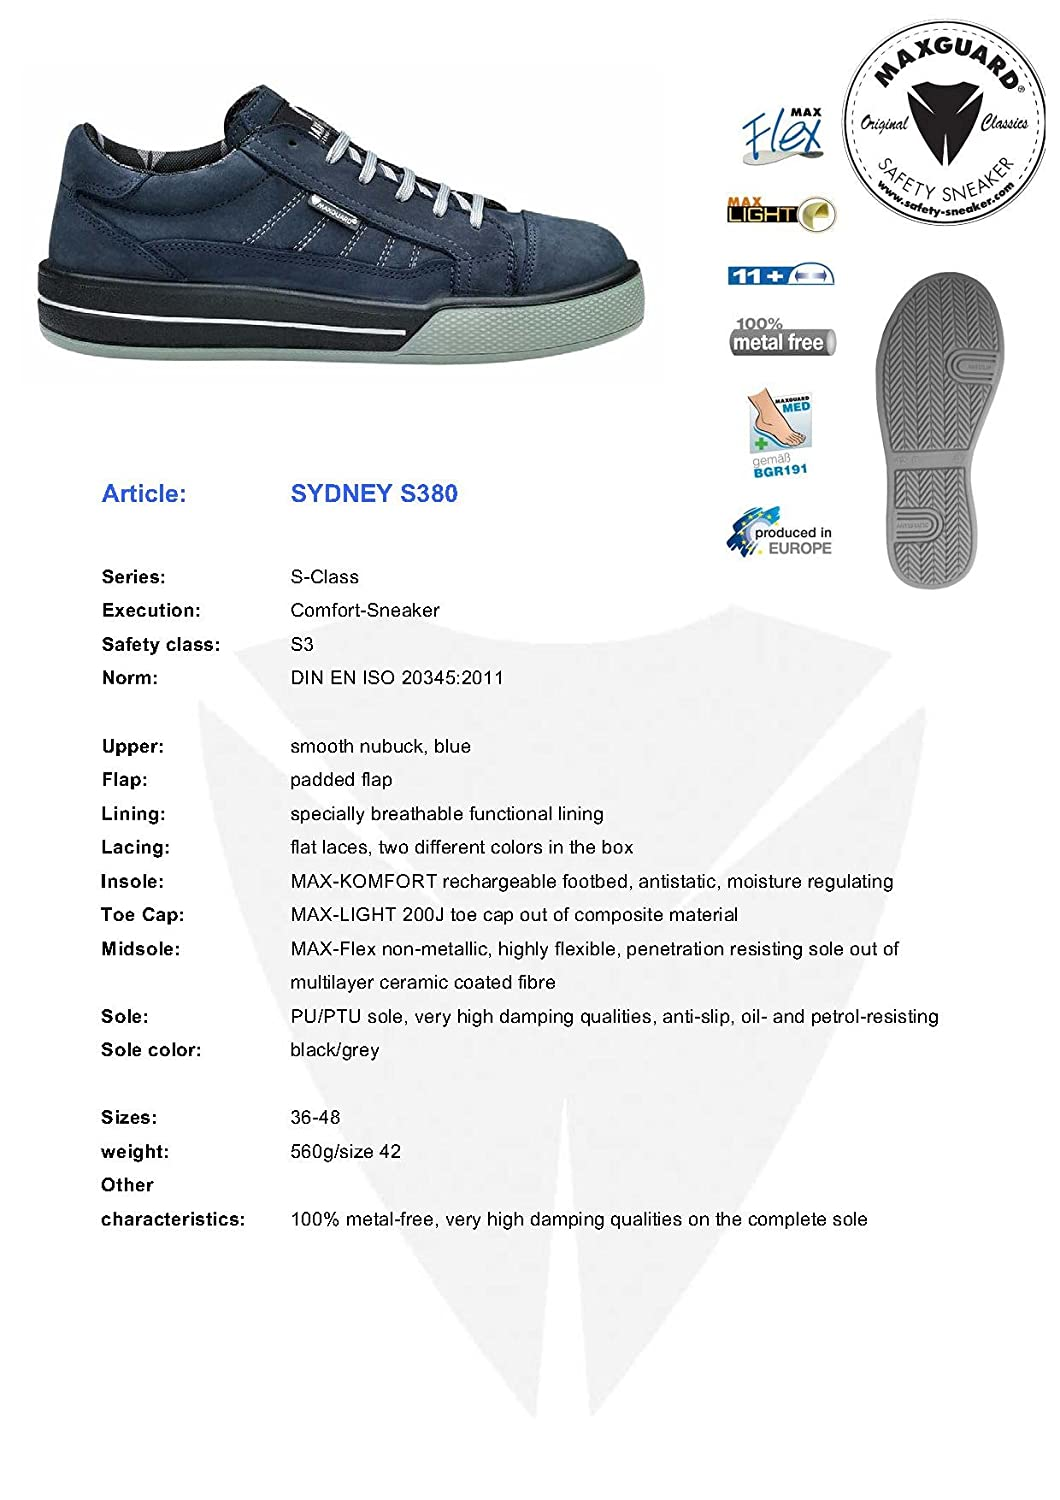 Maxguard Mens Sydney S380 Safety Shoes